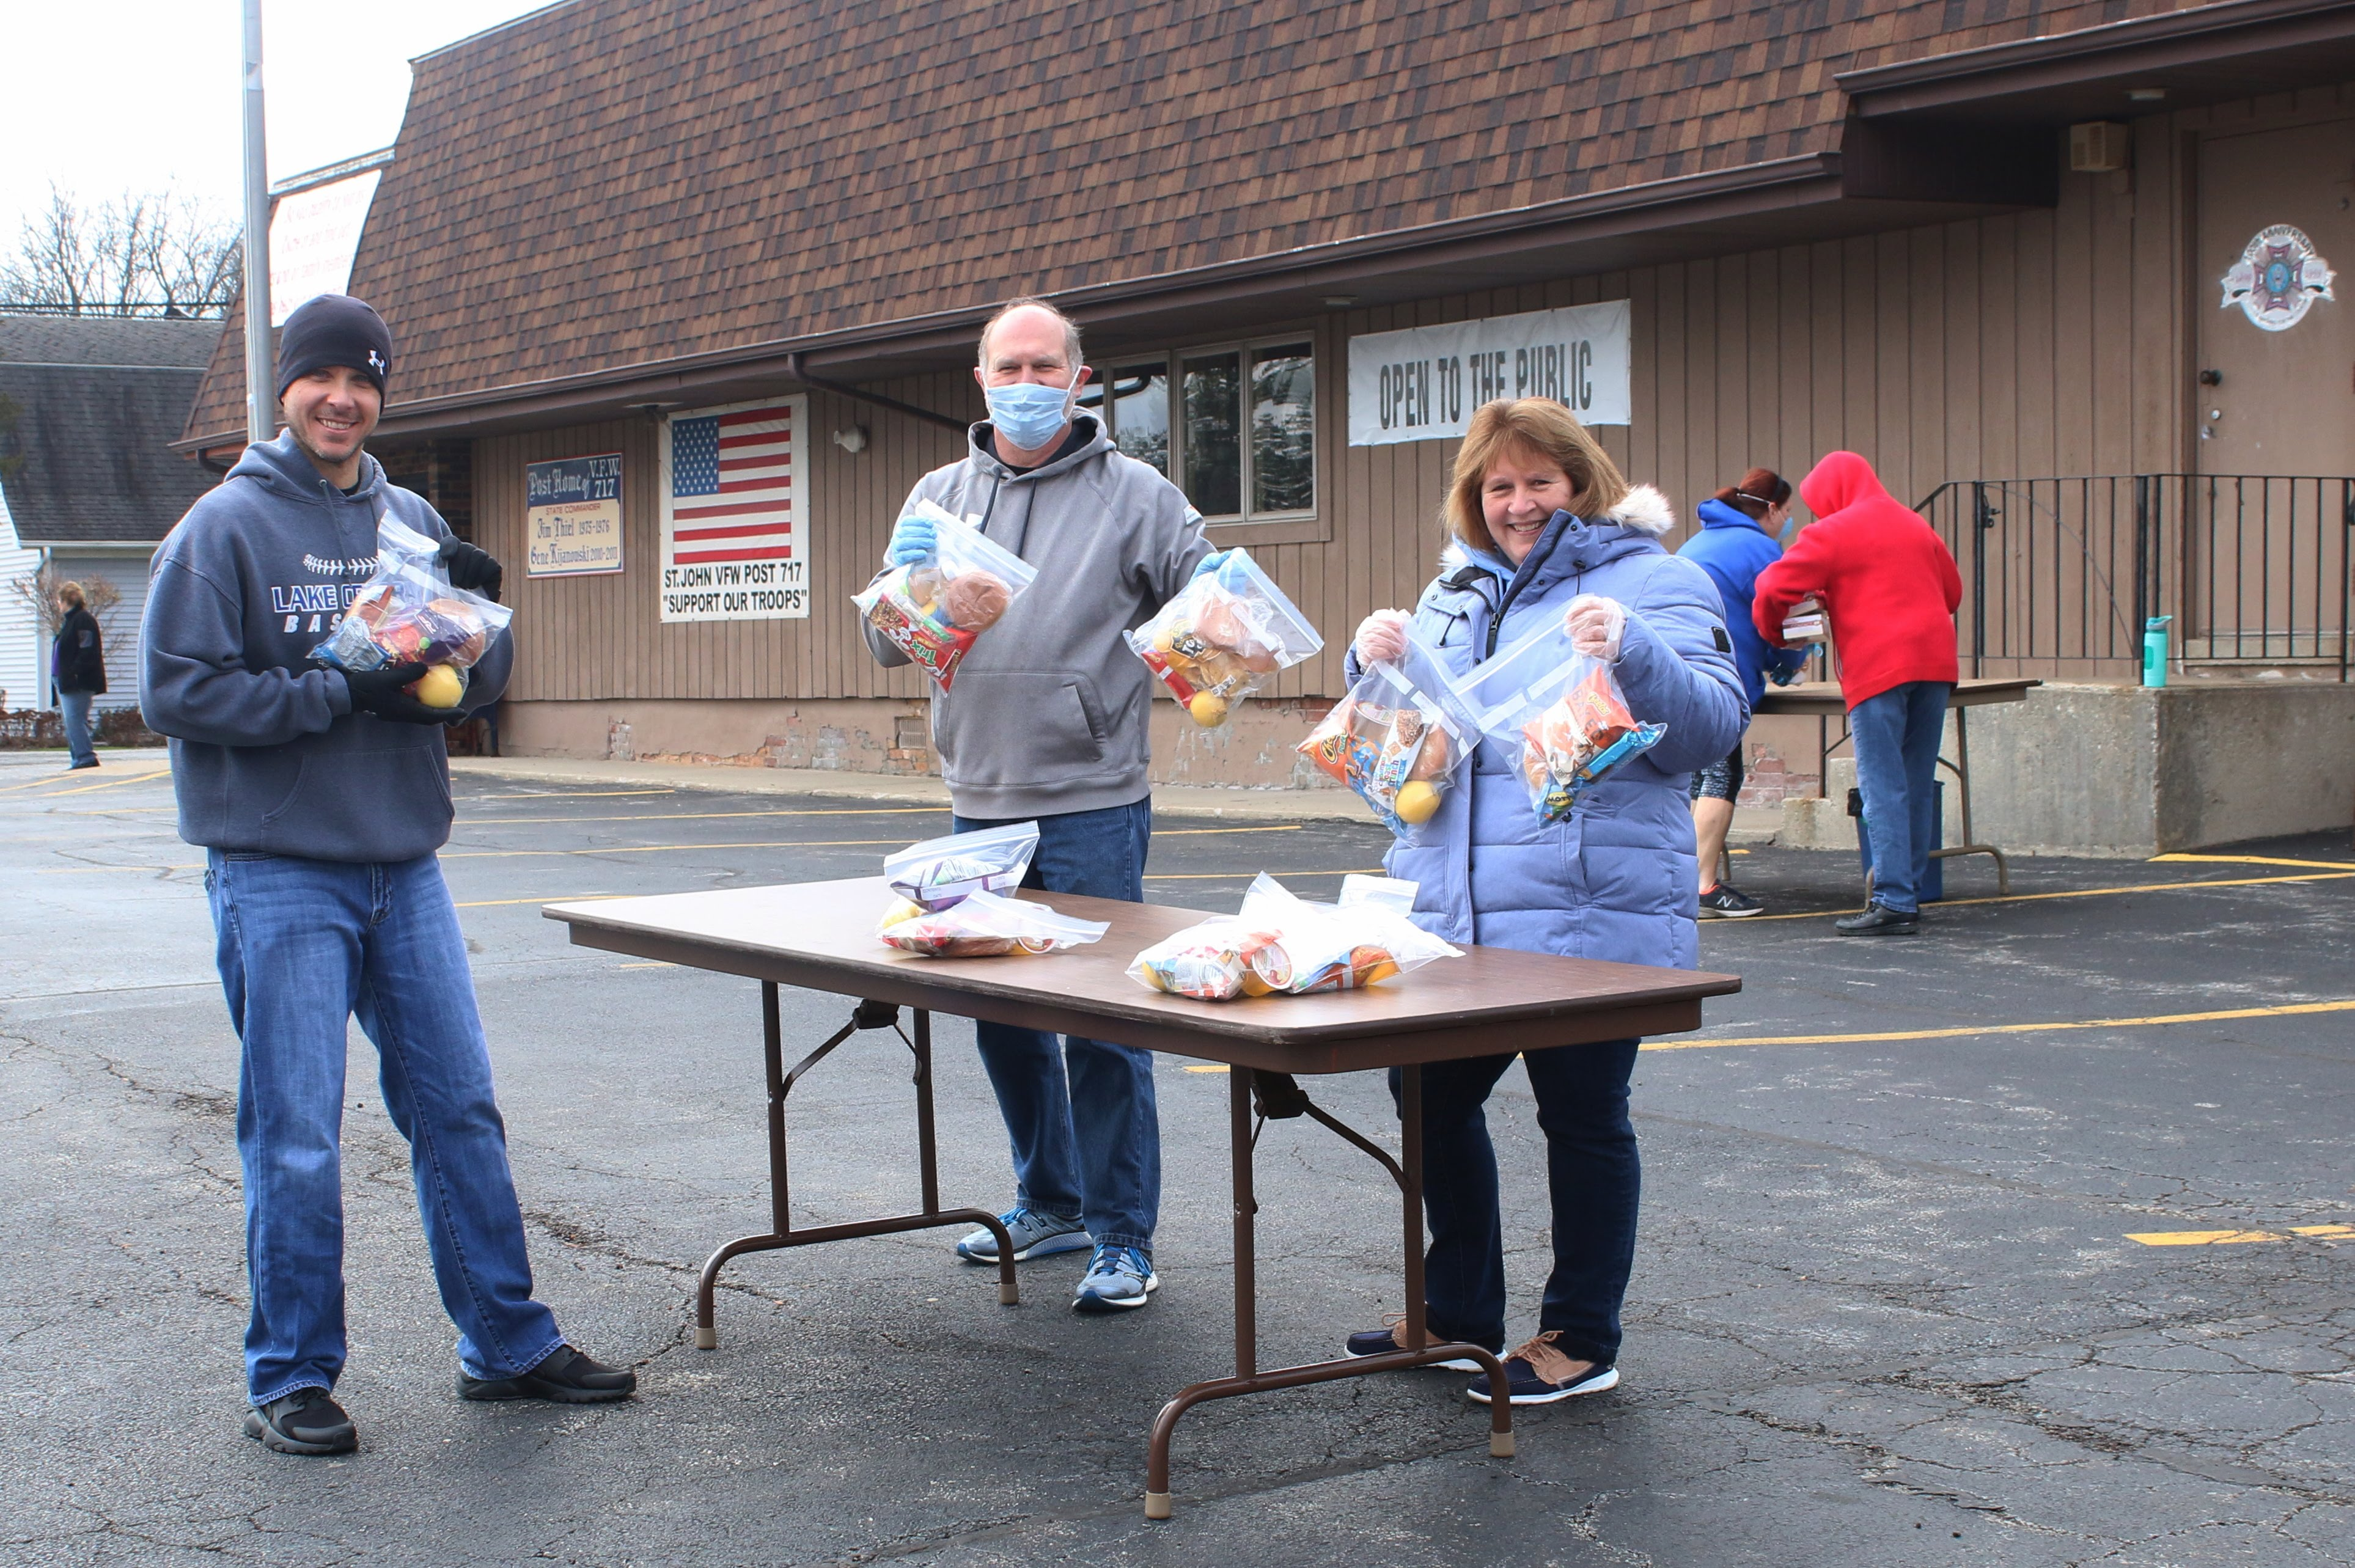 Mr. Stanisz, Mr. Graber and Mrs.Beach assisted with lunch distribution at the VFW on Wednesday April 1.